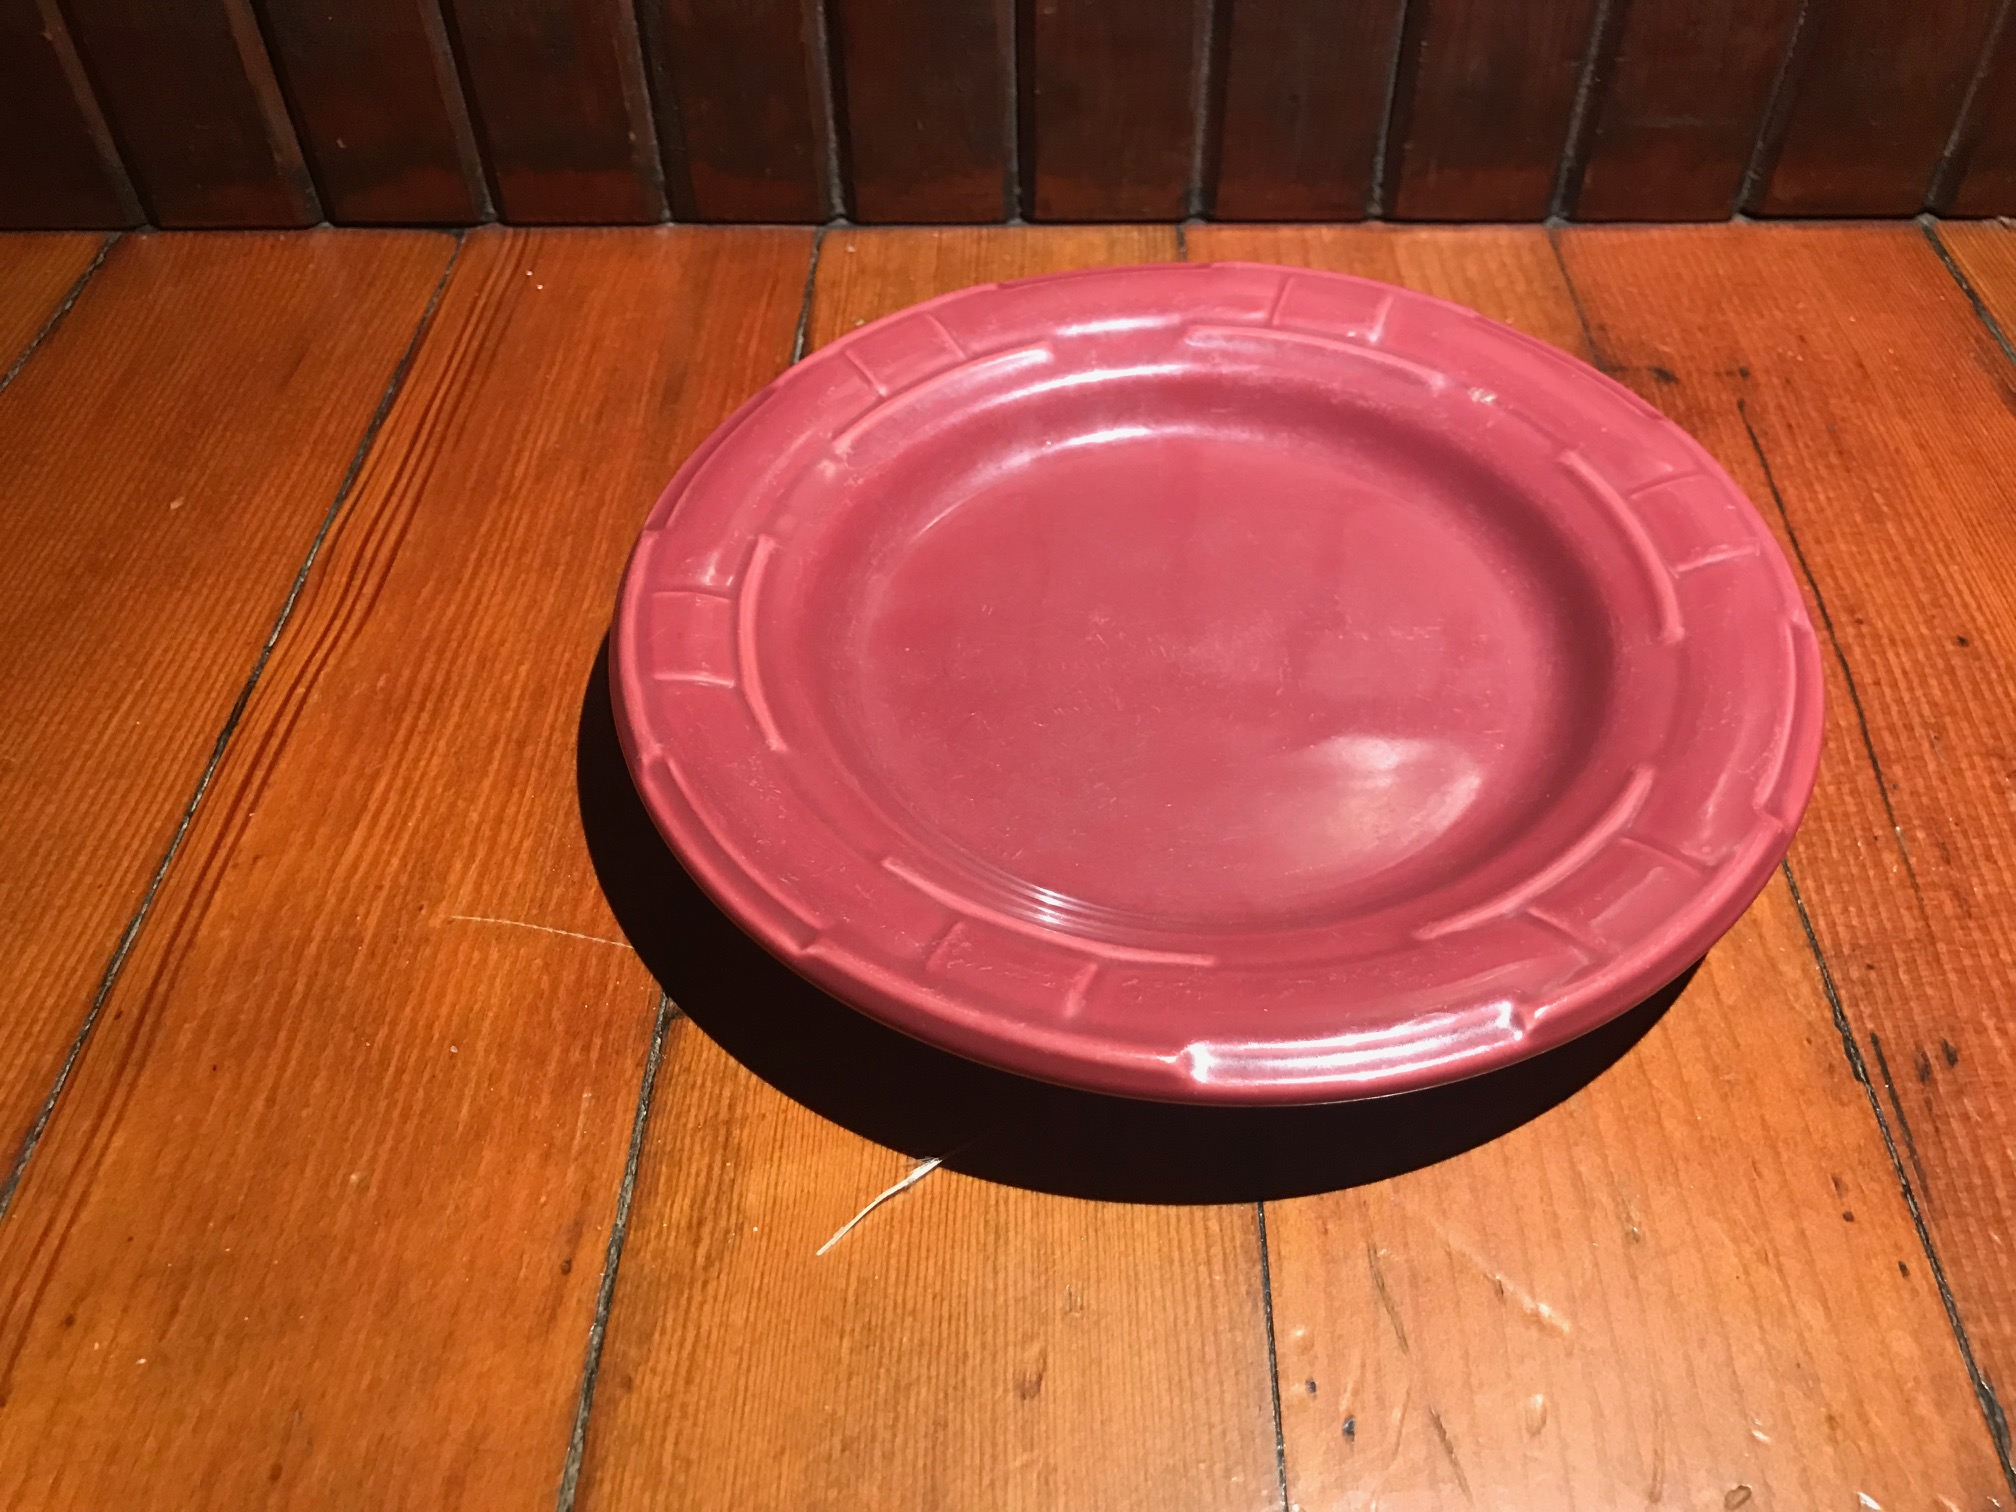 Longaberger Pottery Vitrified China Small Burgundy Plate: 56 ppm Lead + 101 ppm Cadmium